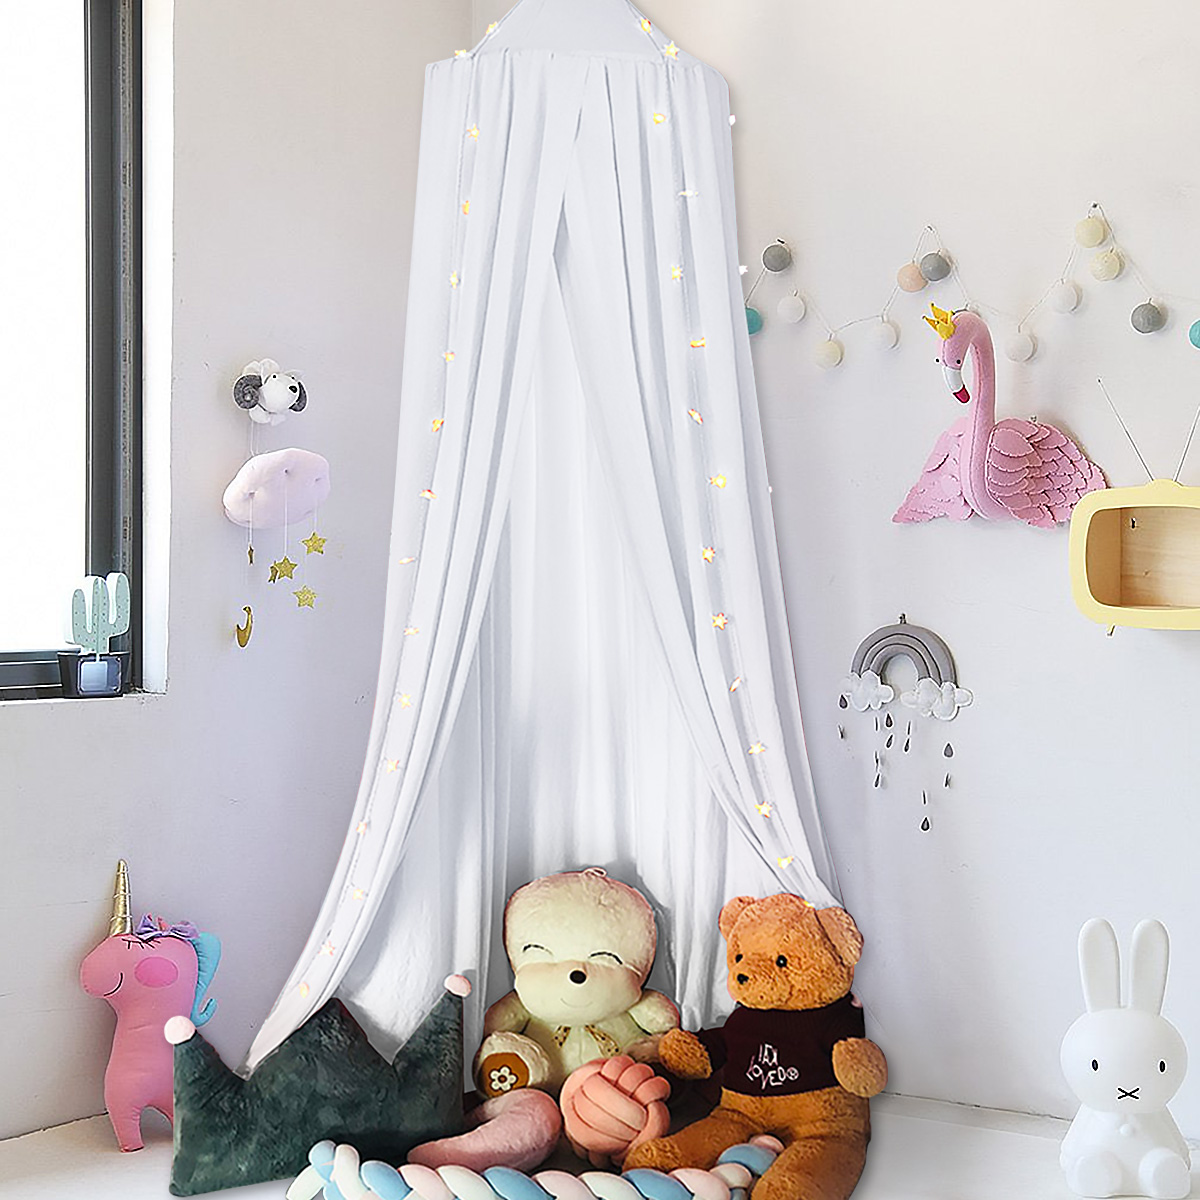 Baby Bedding Round Dome Bed Canopy Kids Play Tent Hanging Mosquito Net Curtain For Baby Kids Reading Playing Sleeping Room Decoration